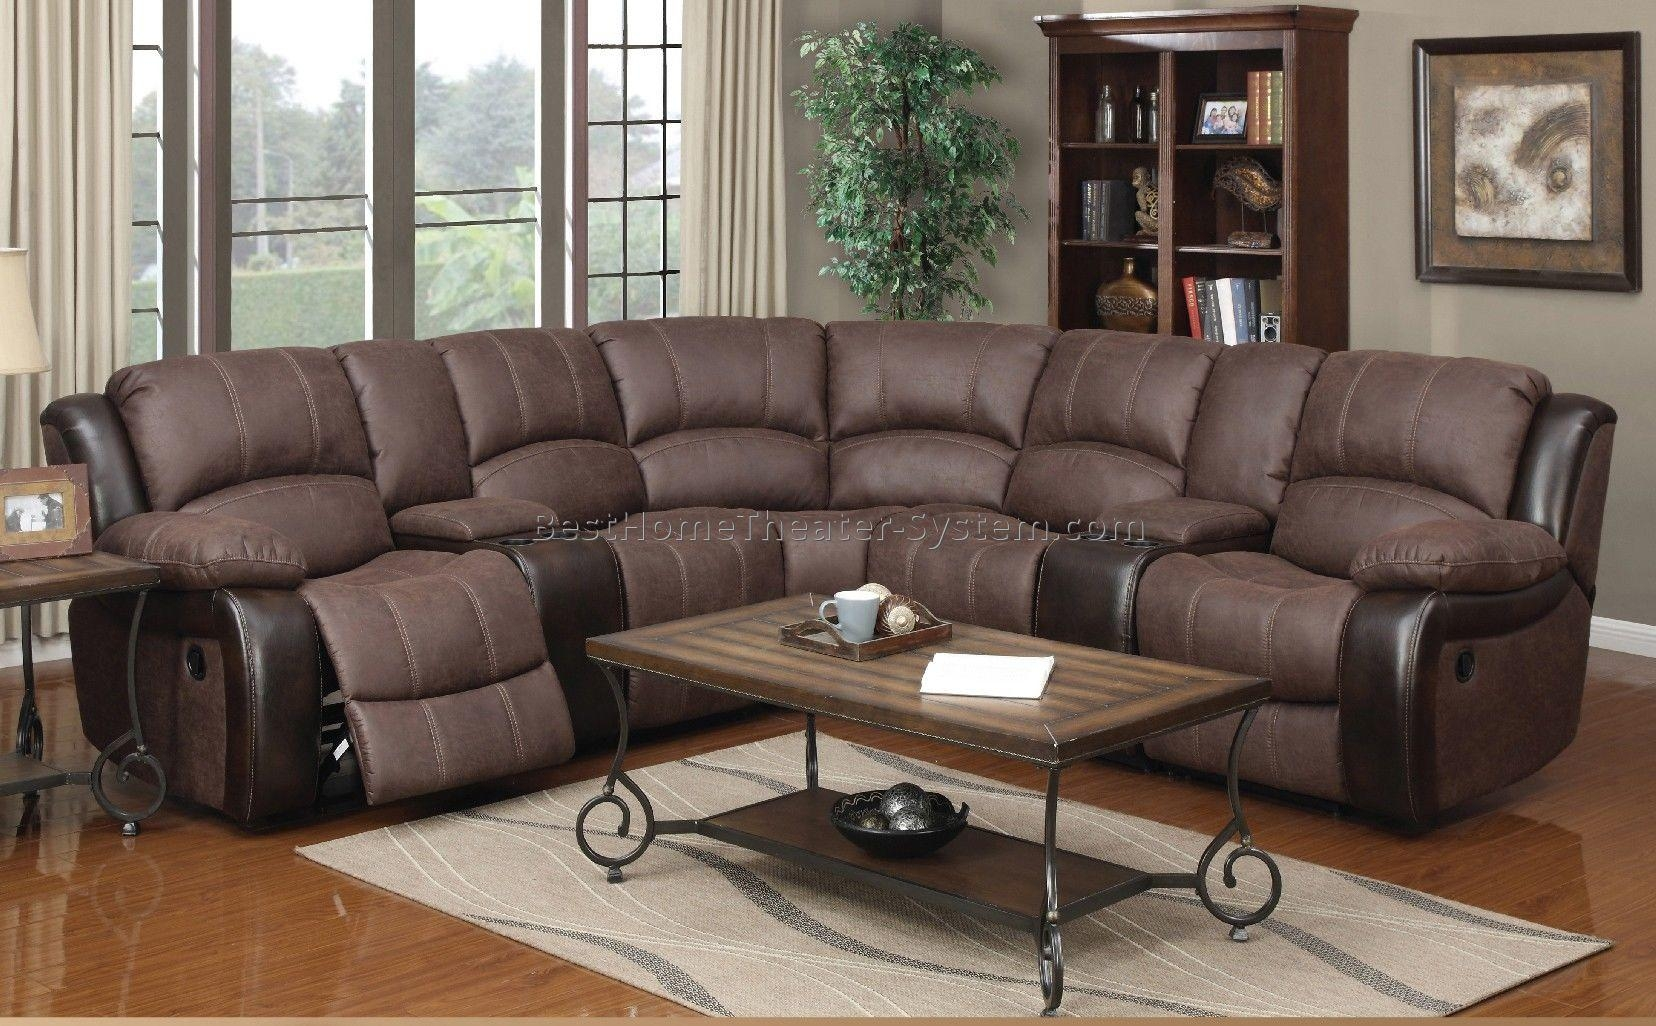 Sectional Home Theater Seating 6 | Best Home Theater Systems Within Theatre Sectional Sofas (View 6 of 20)